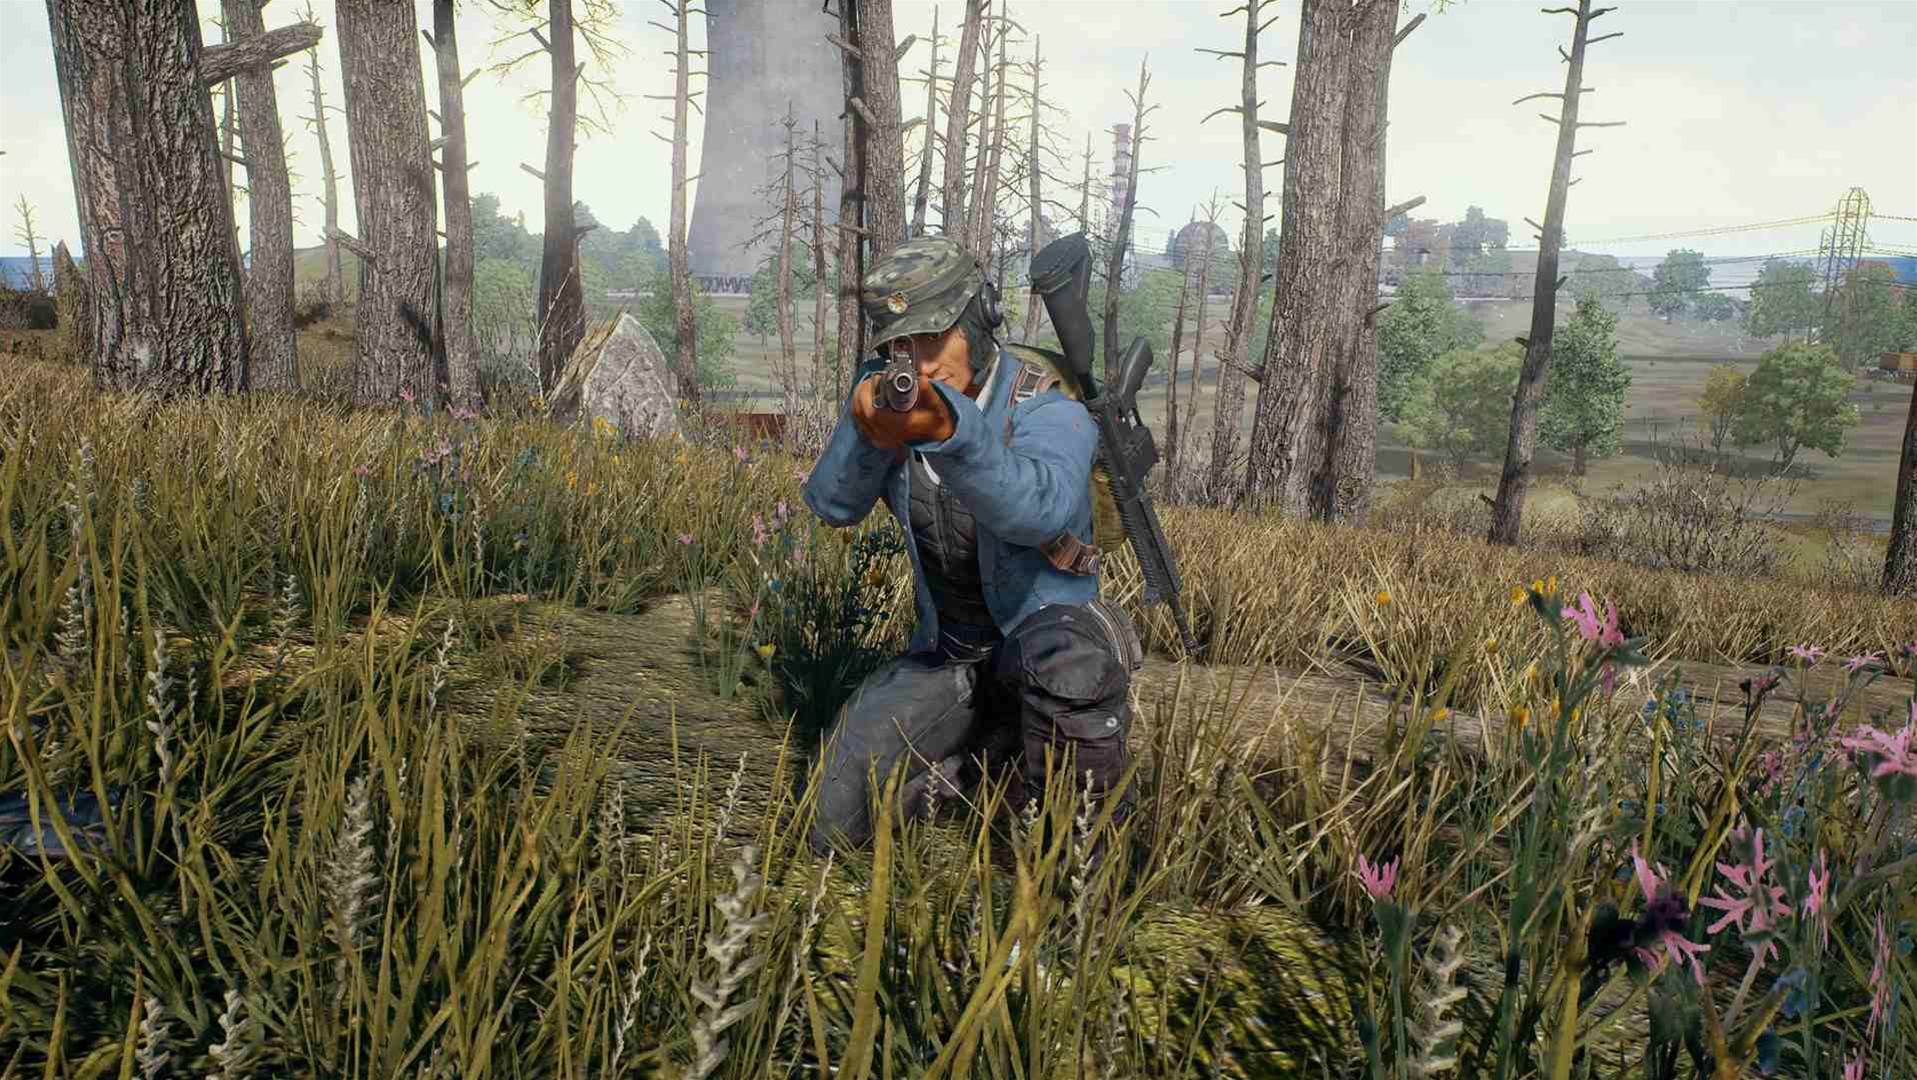 PlayerUnknown's Battlegrounds screenshots